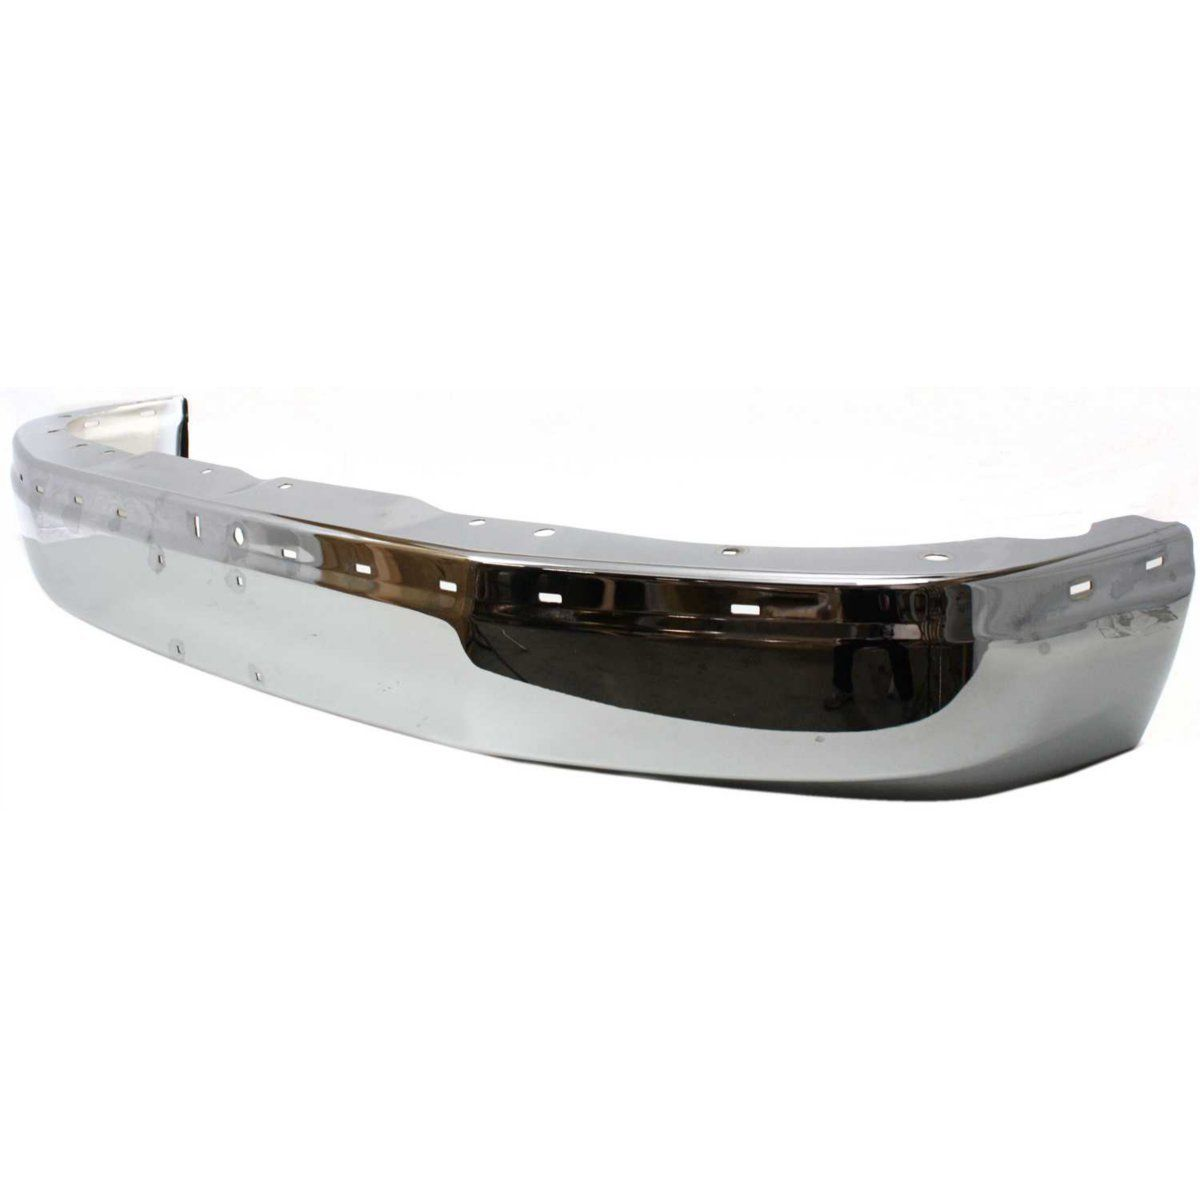 NEW FRONT BUMPER CHROME STEEL FITS 2003-2017 CHEVROLET EXPRESS 2500 GM1002459